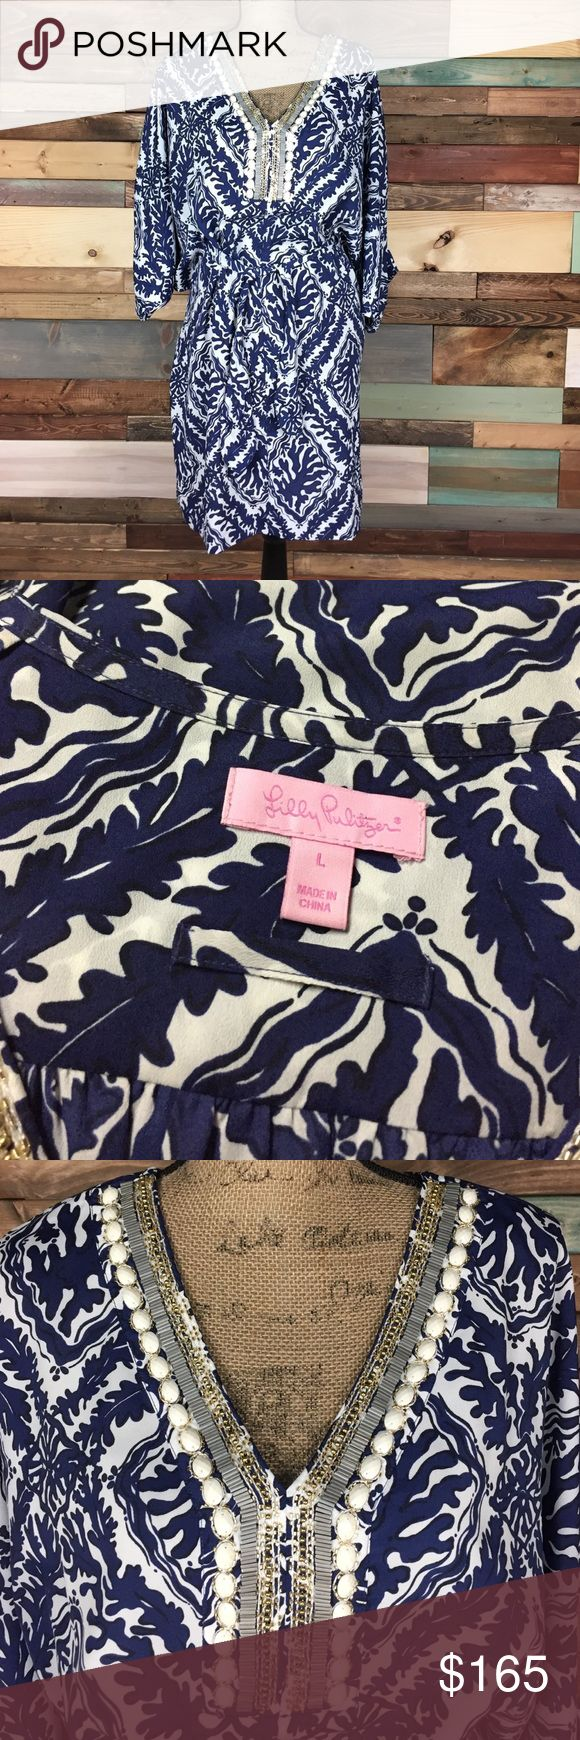 Lilly Pulitzer Navy Beaded Kimono Dress - L Lilly Pulitzer Navy Beaded Kimono Dress - L // EUC - no flaws or signs of wear. Beading is pristine. Lightweight - perfect for a beach vacation. Tie waist. Lilly Pulitzer Dresses